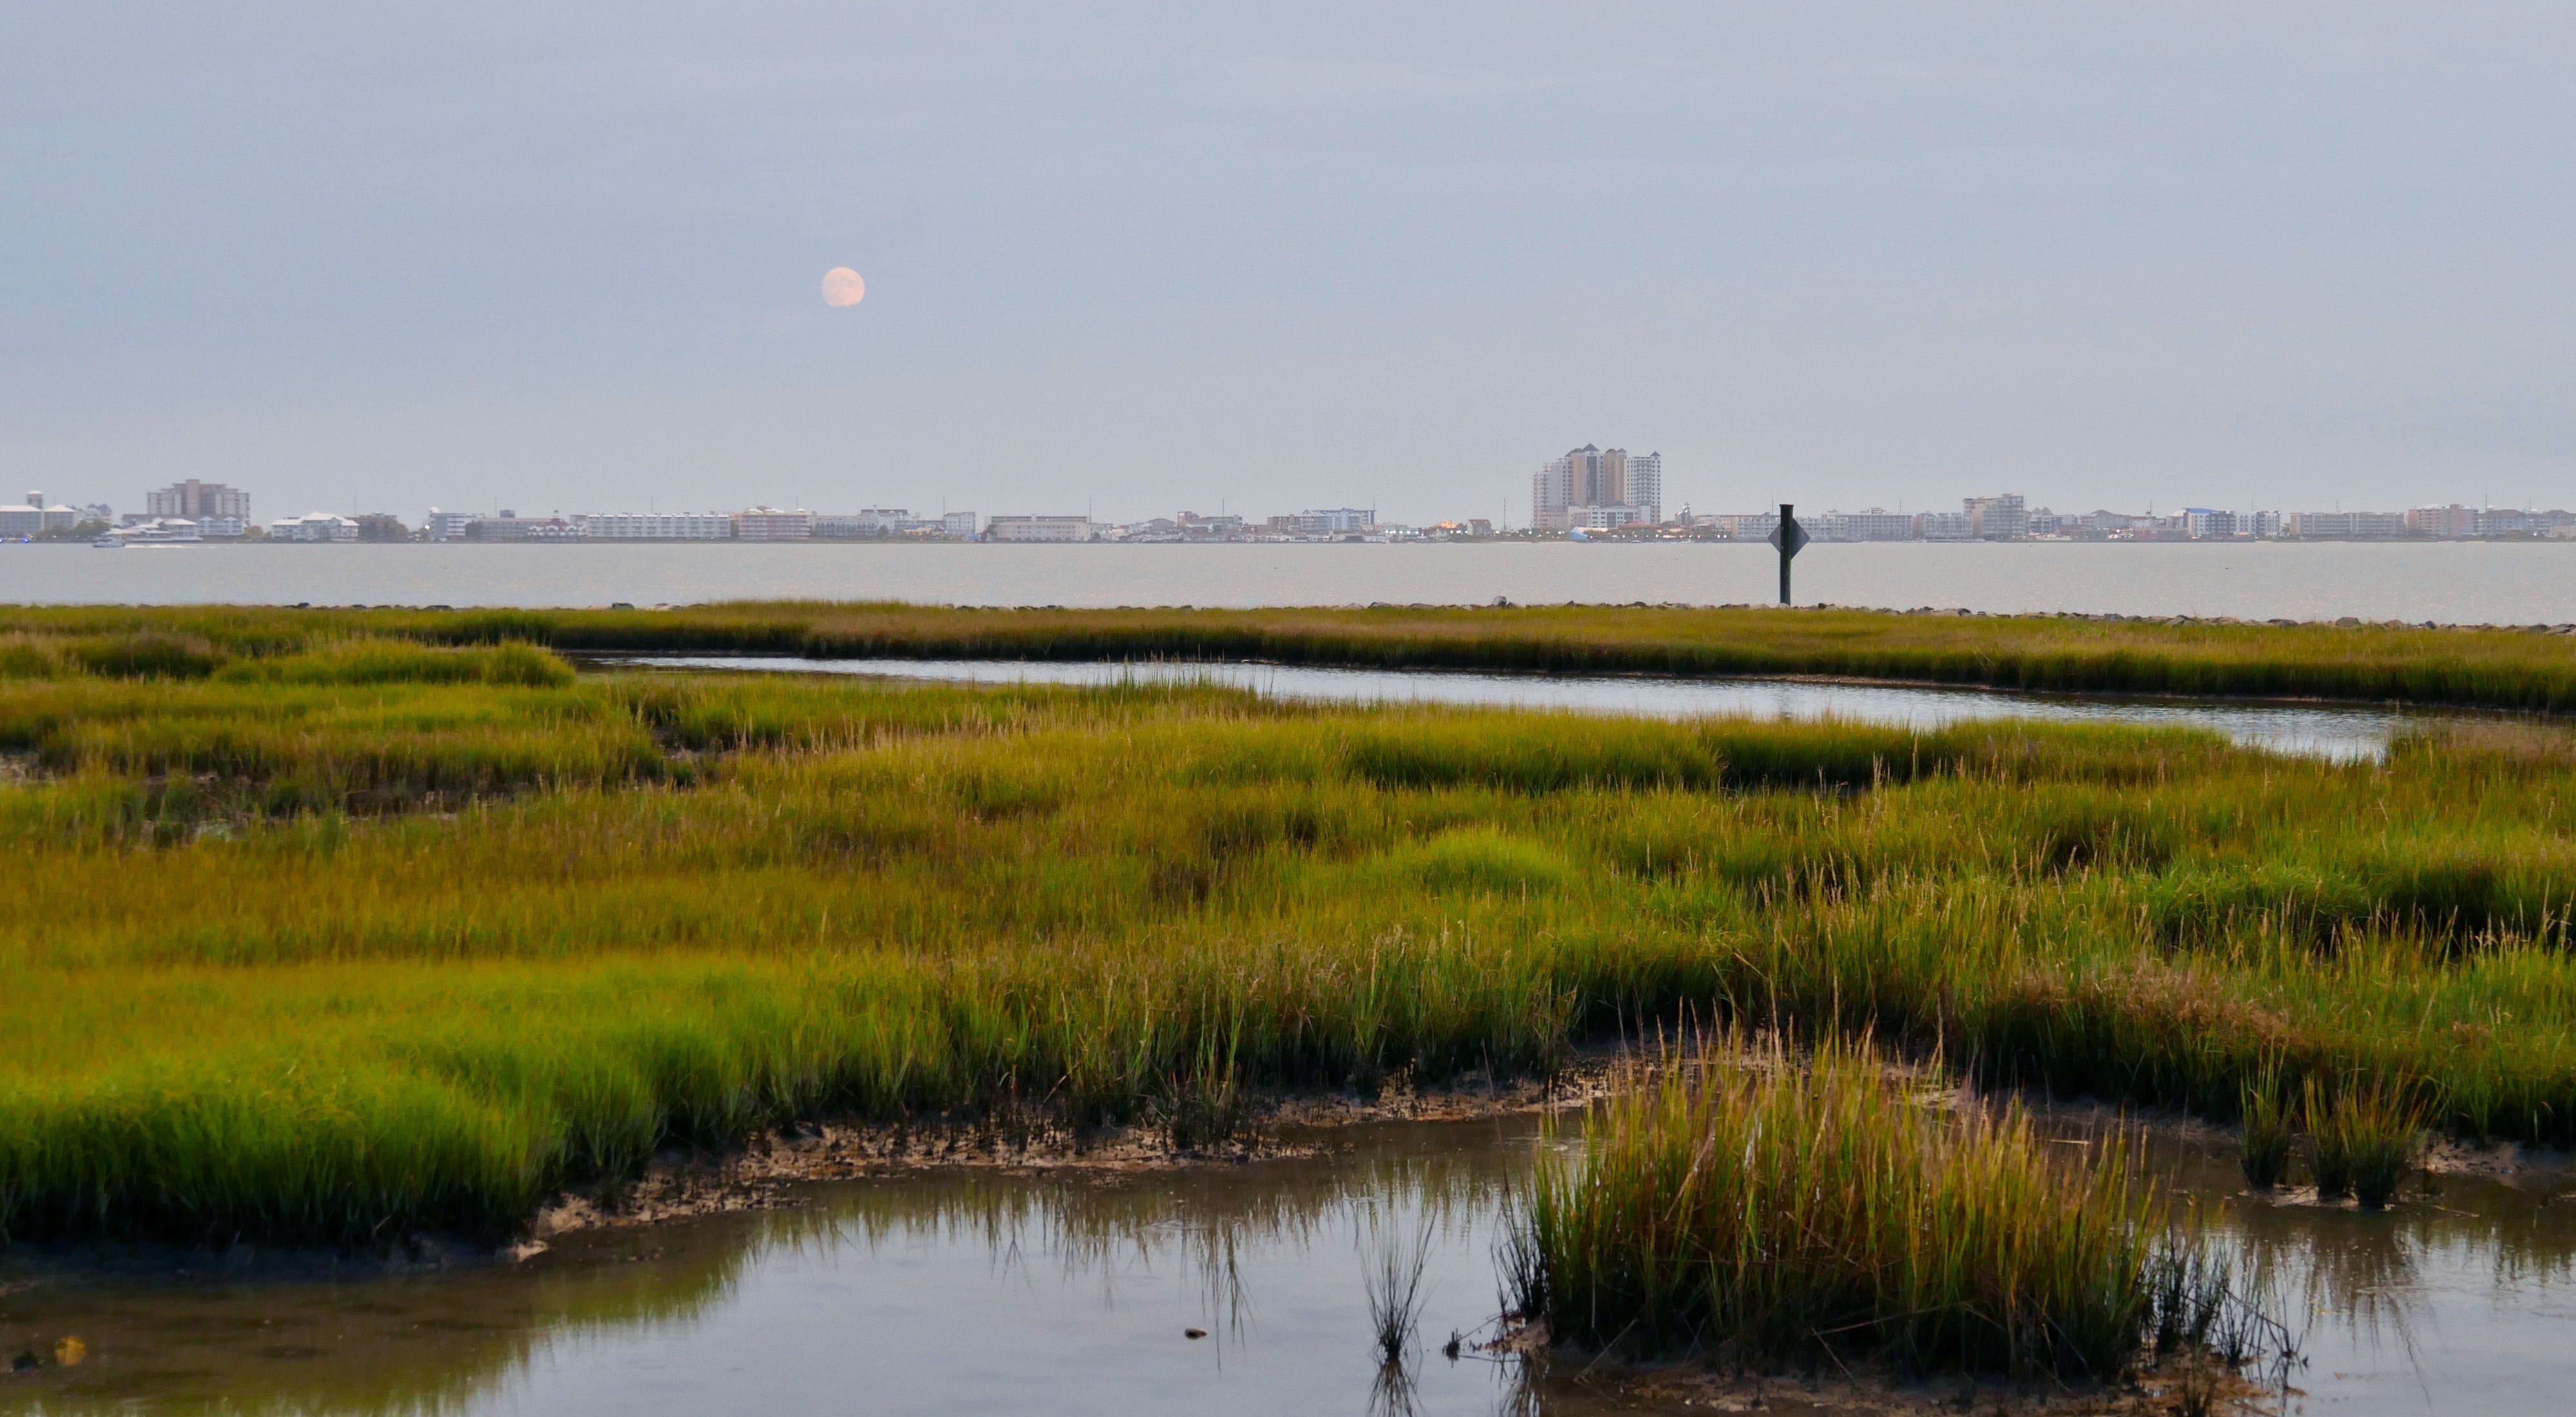 View of the Ocean City Maryland skyline. The buildings line the skyline in the distance across an open body of water. Green marshes cut by meandering channels of water are in the foreground.